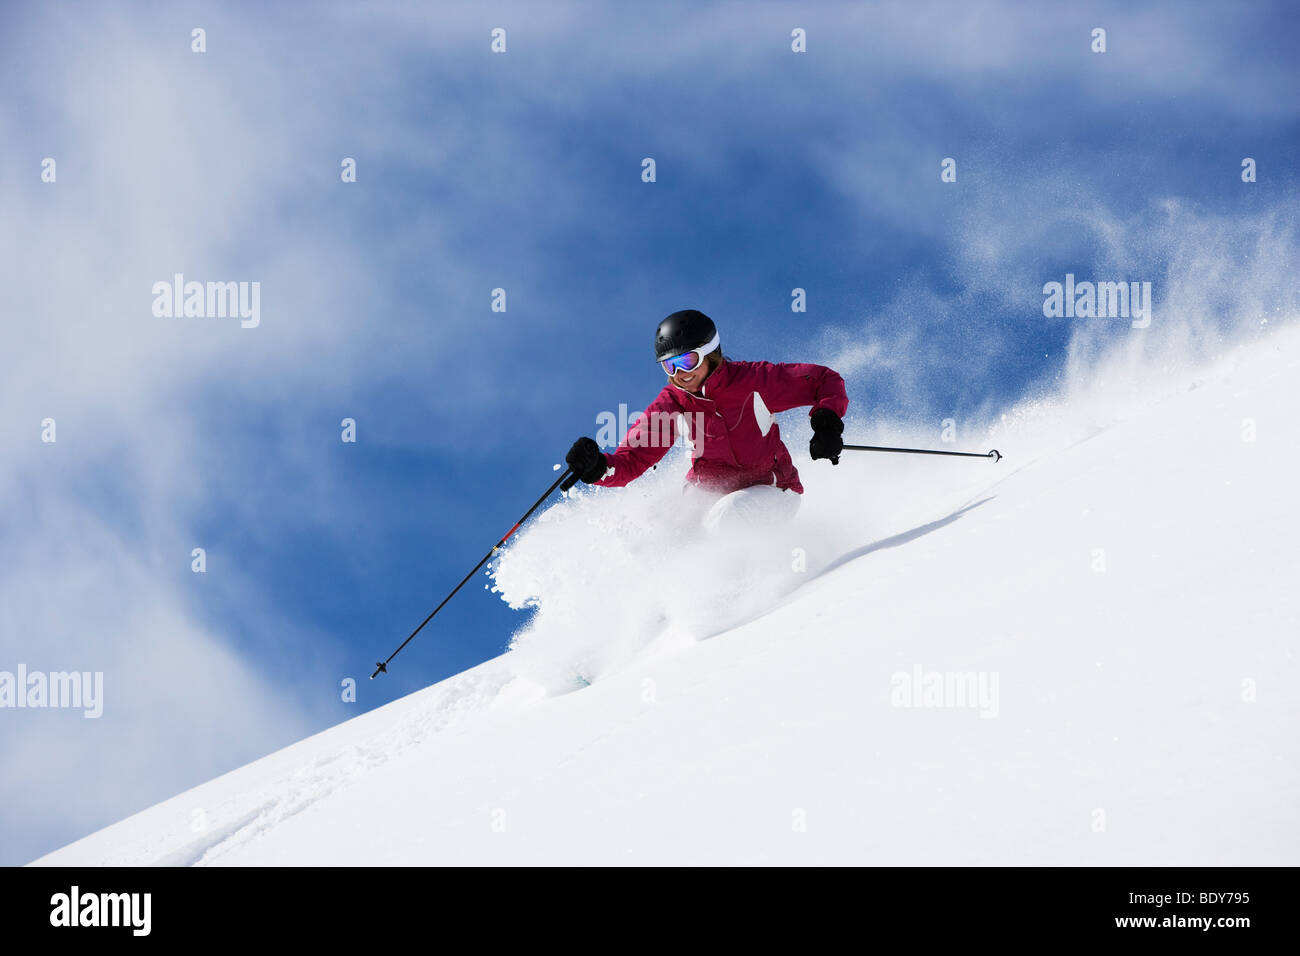 Woman in red & white outfit carving. Stock Photo